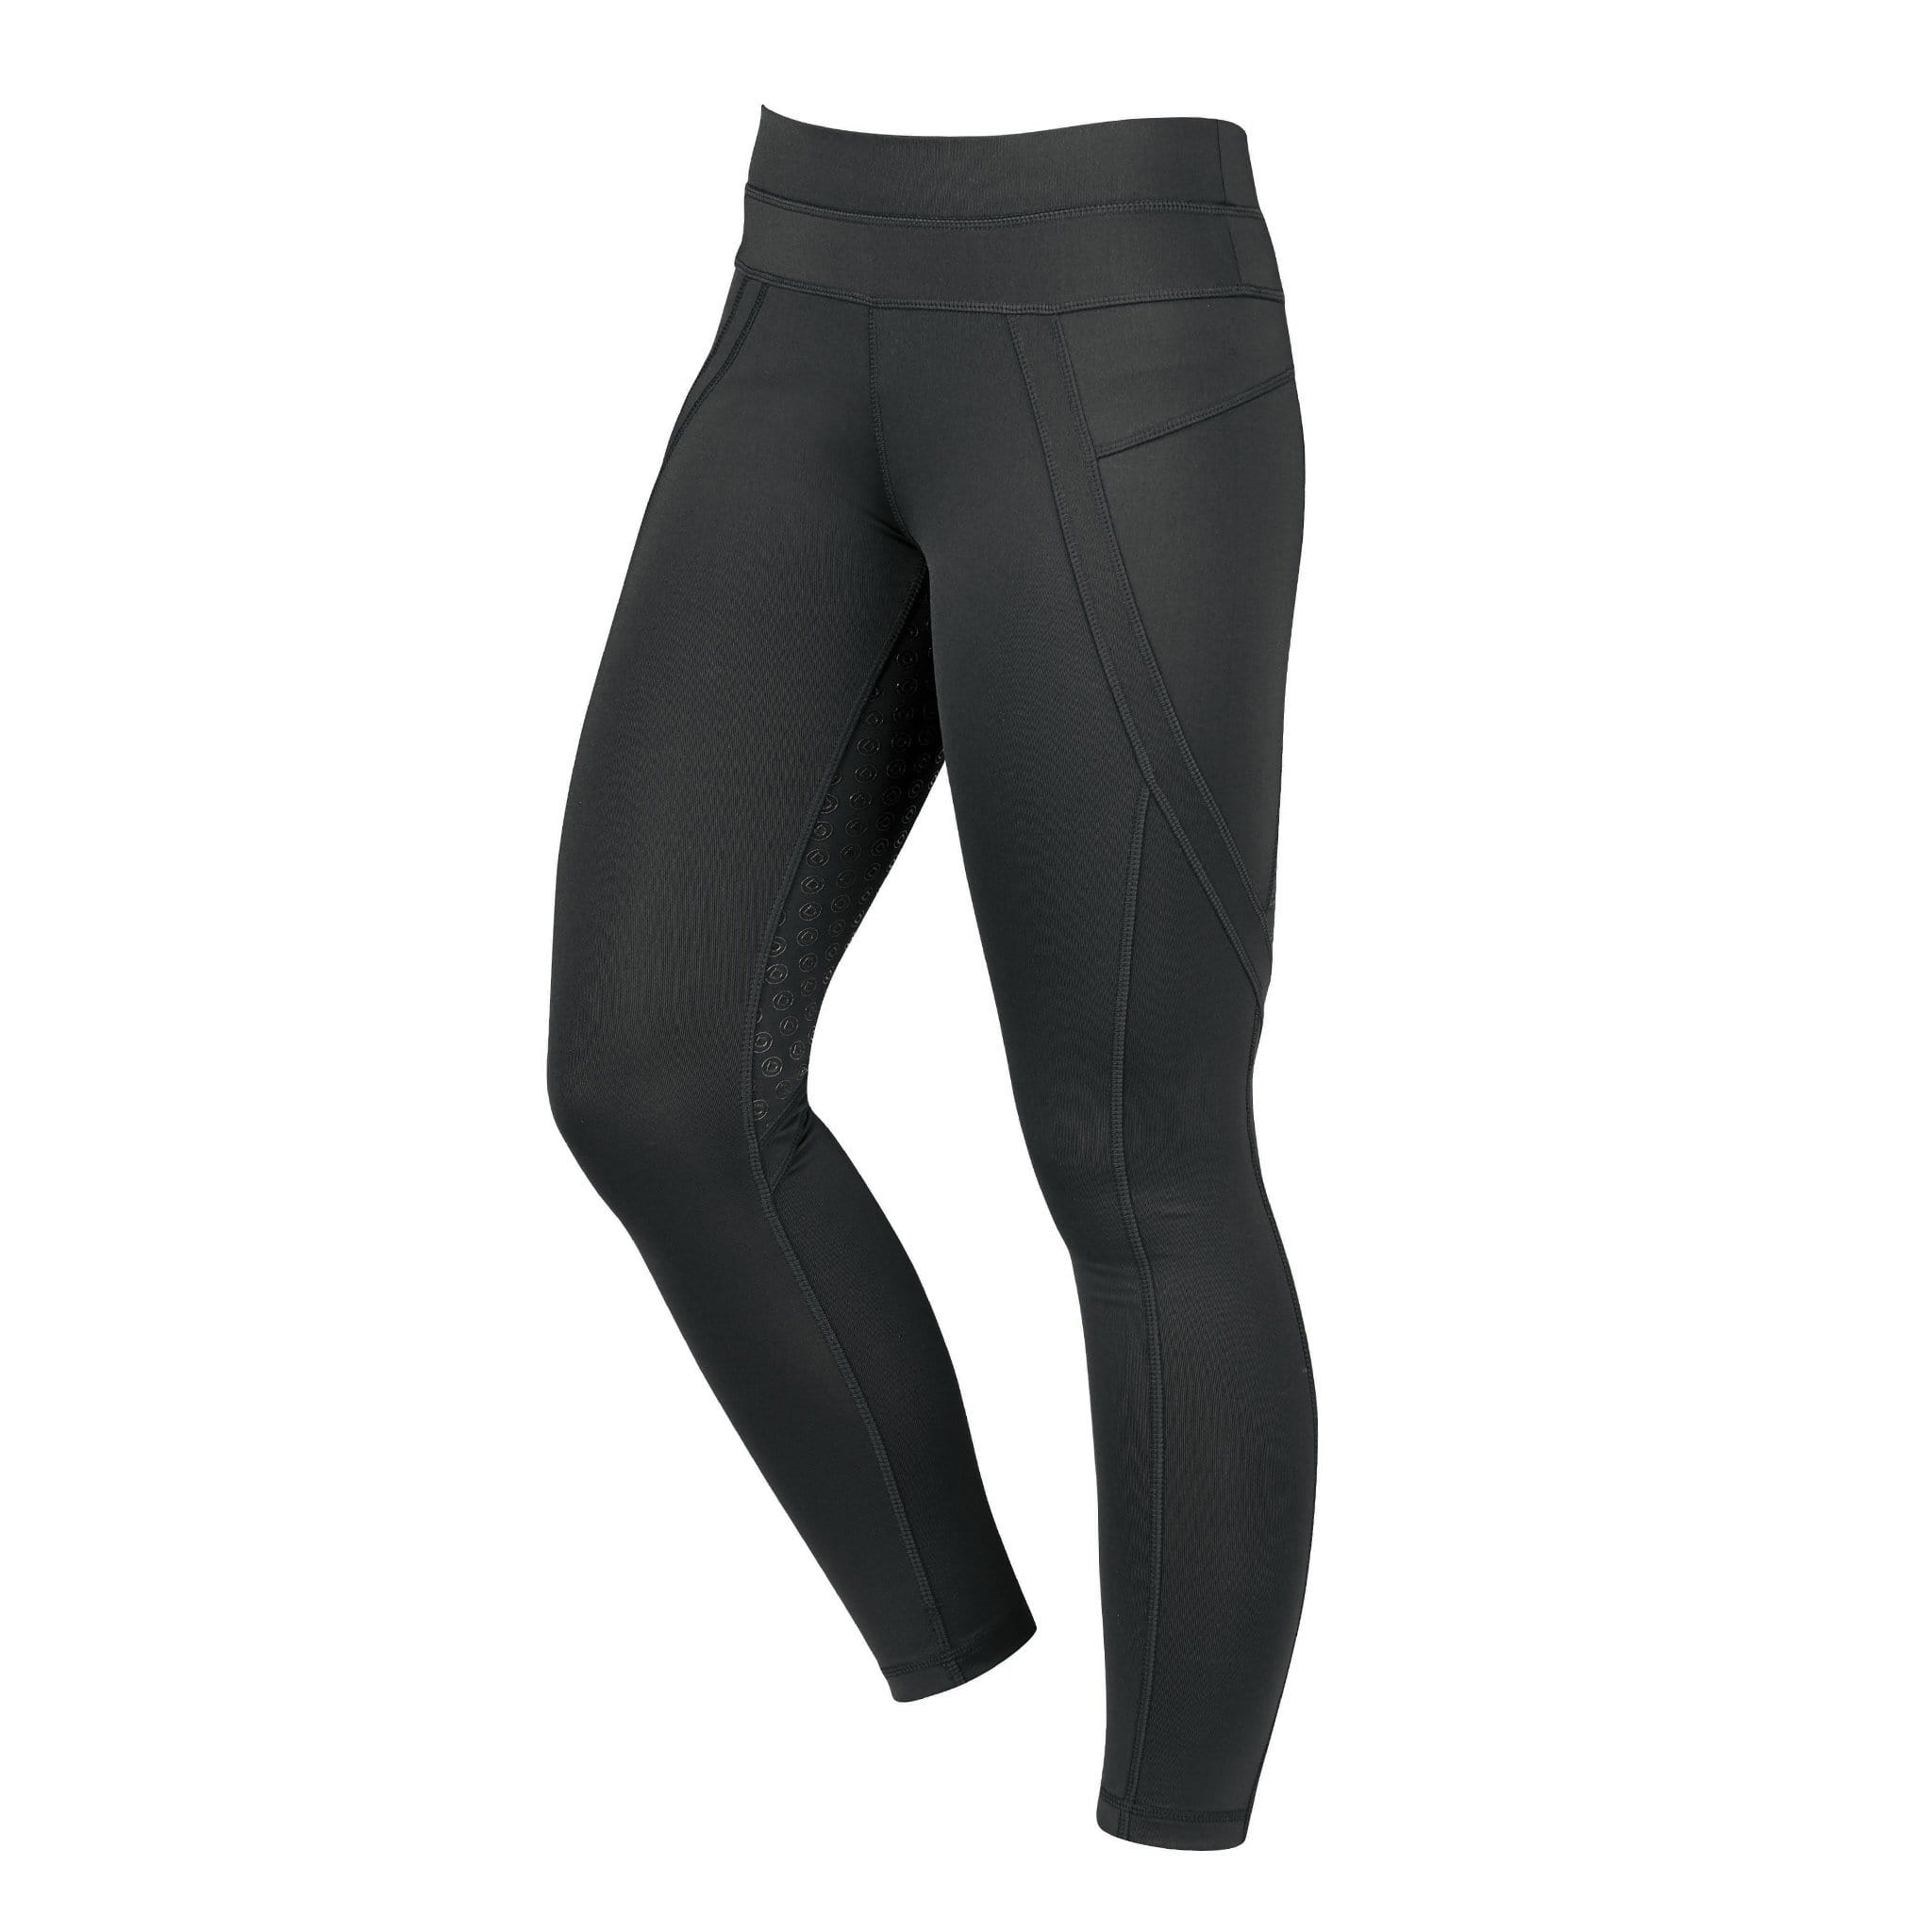 Dublin Performance Active Silicone Full Seat Riding Tights 809307 Black Front